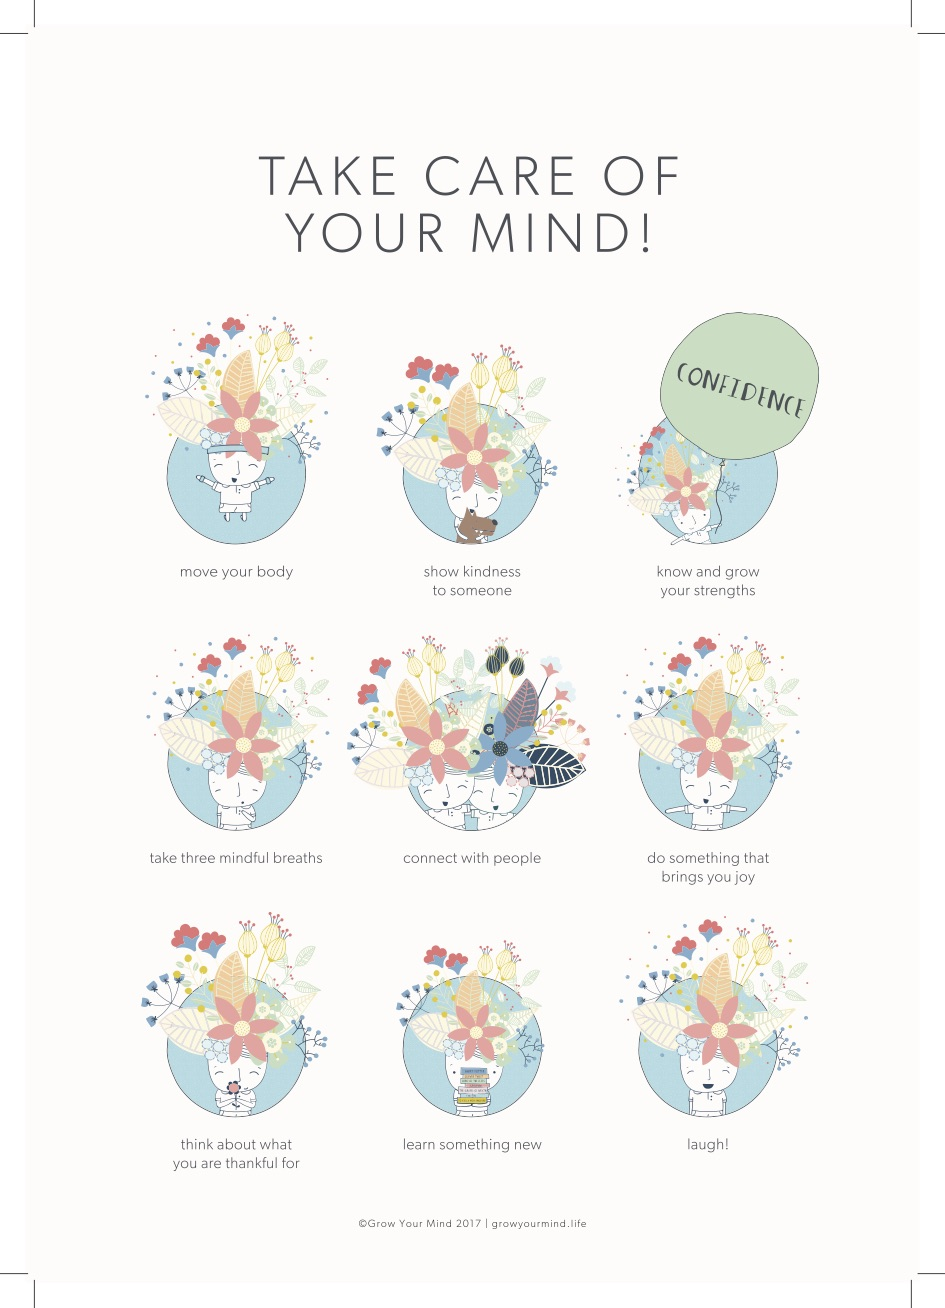 Grow Your Mind - Checklist for Your Mind poster. Design by Jane Hunt